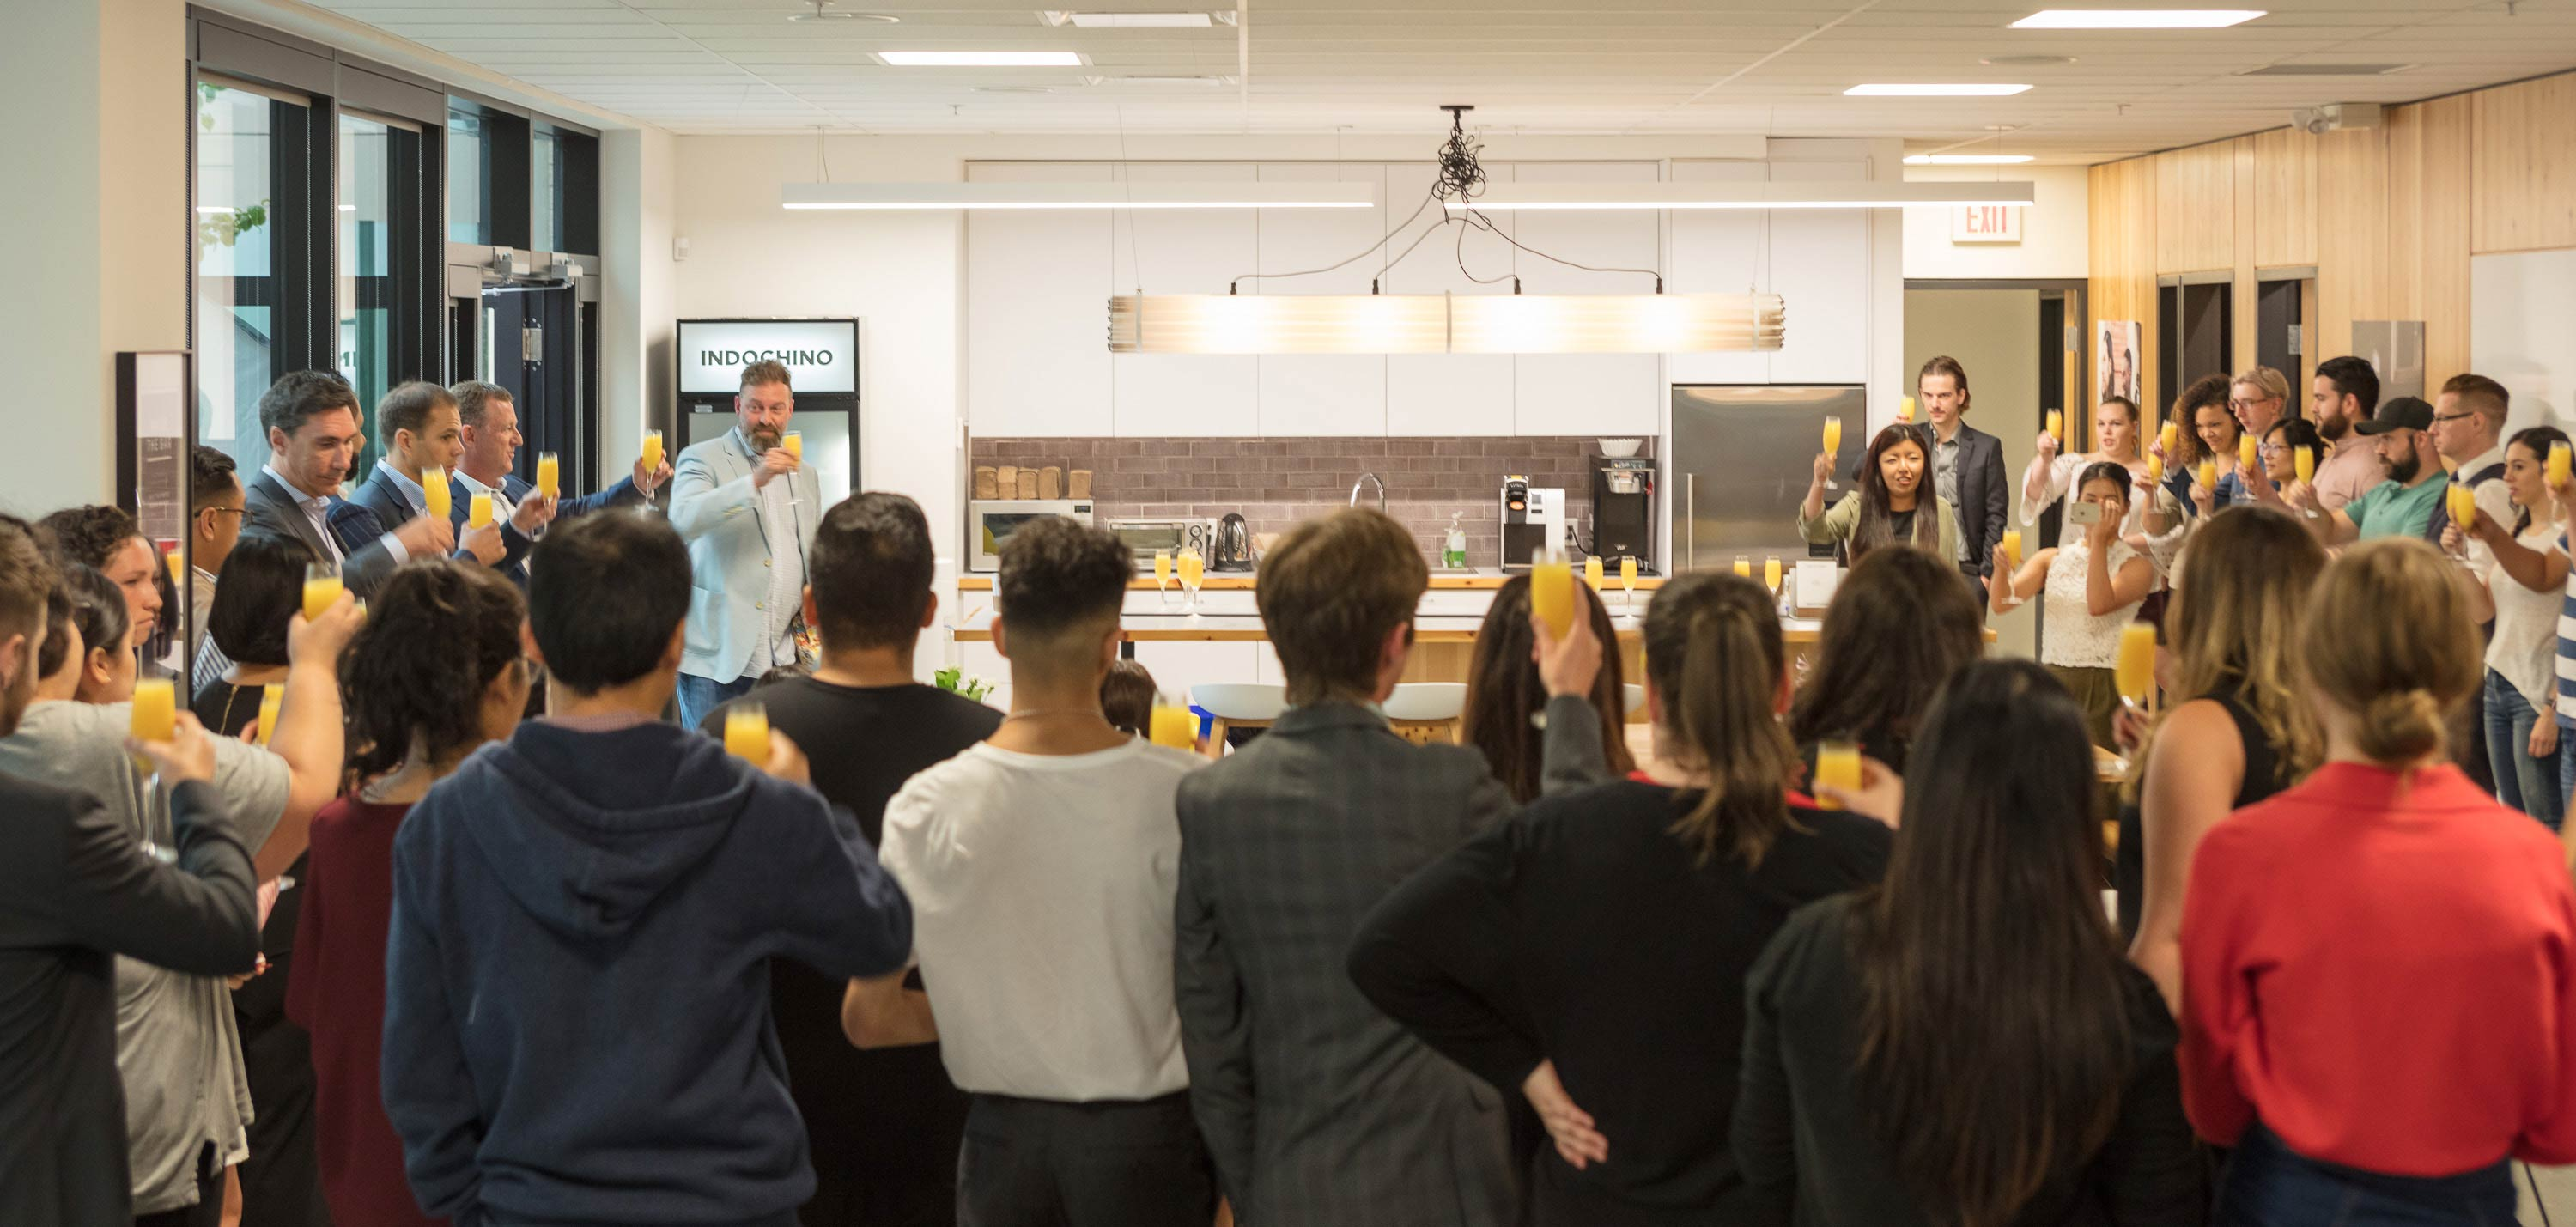 INDOCHINO employees raising a toast in the luchroom at headquarters.